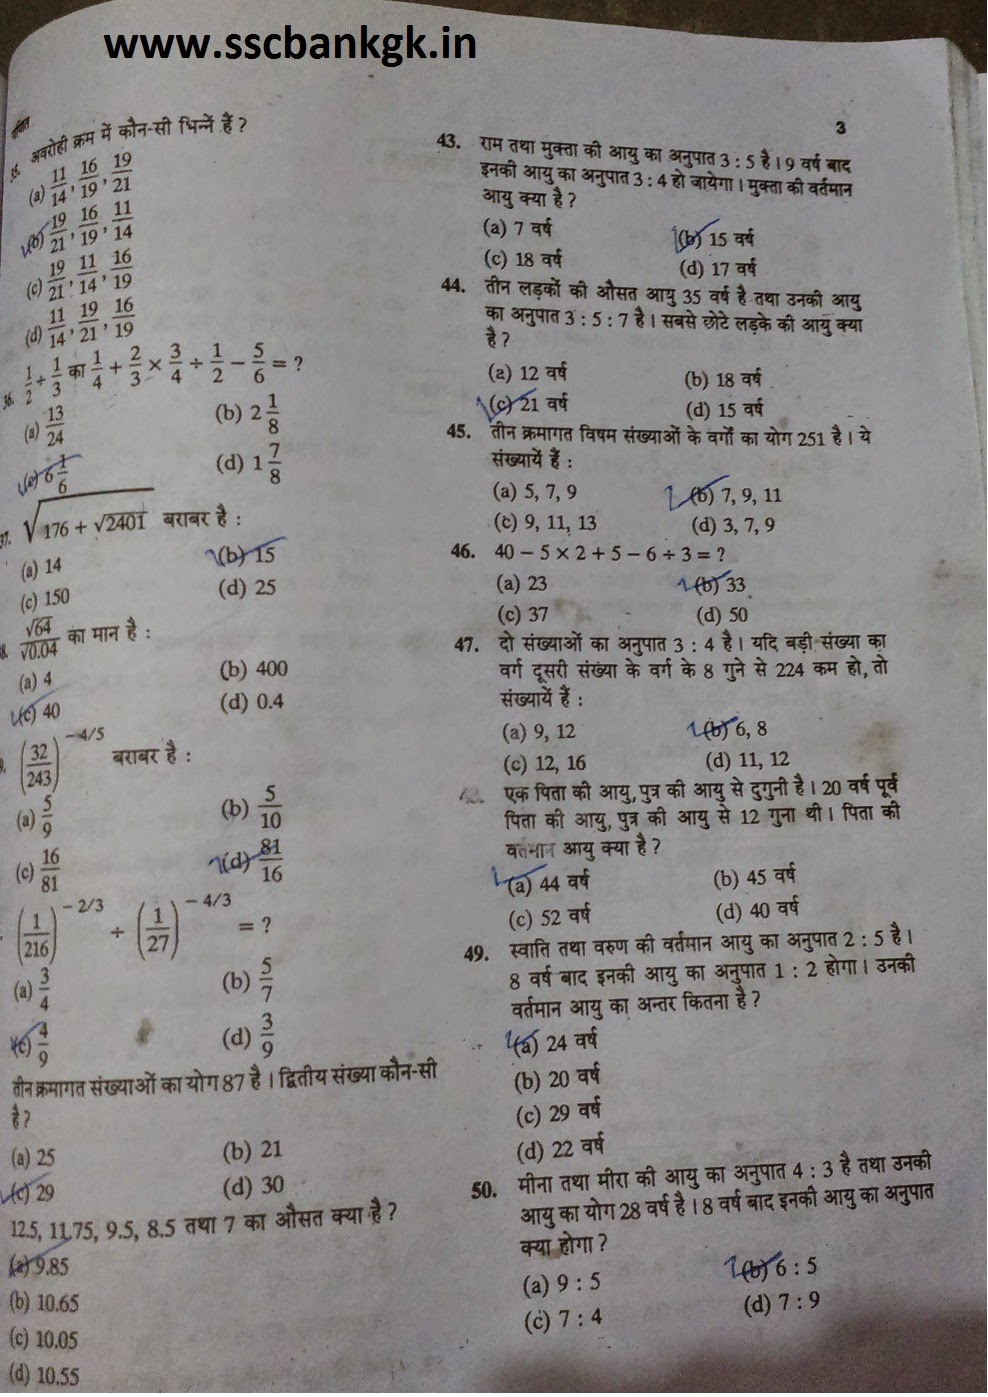 Up lekhpal question paper 2019 solved practice sets upsssc.